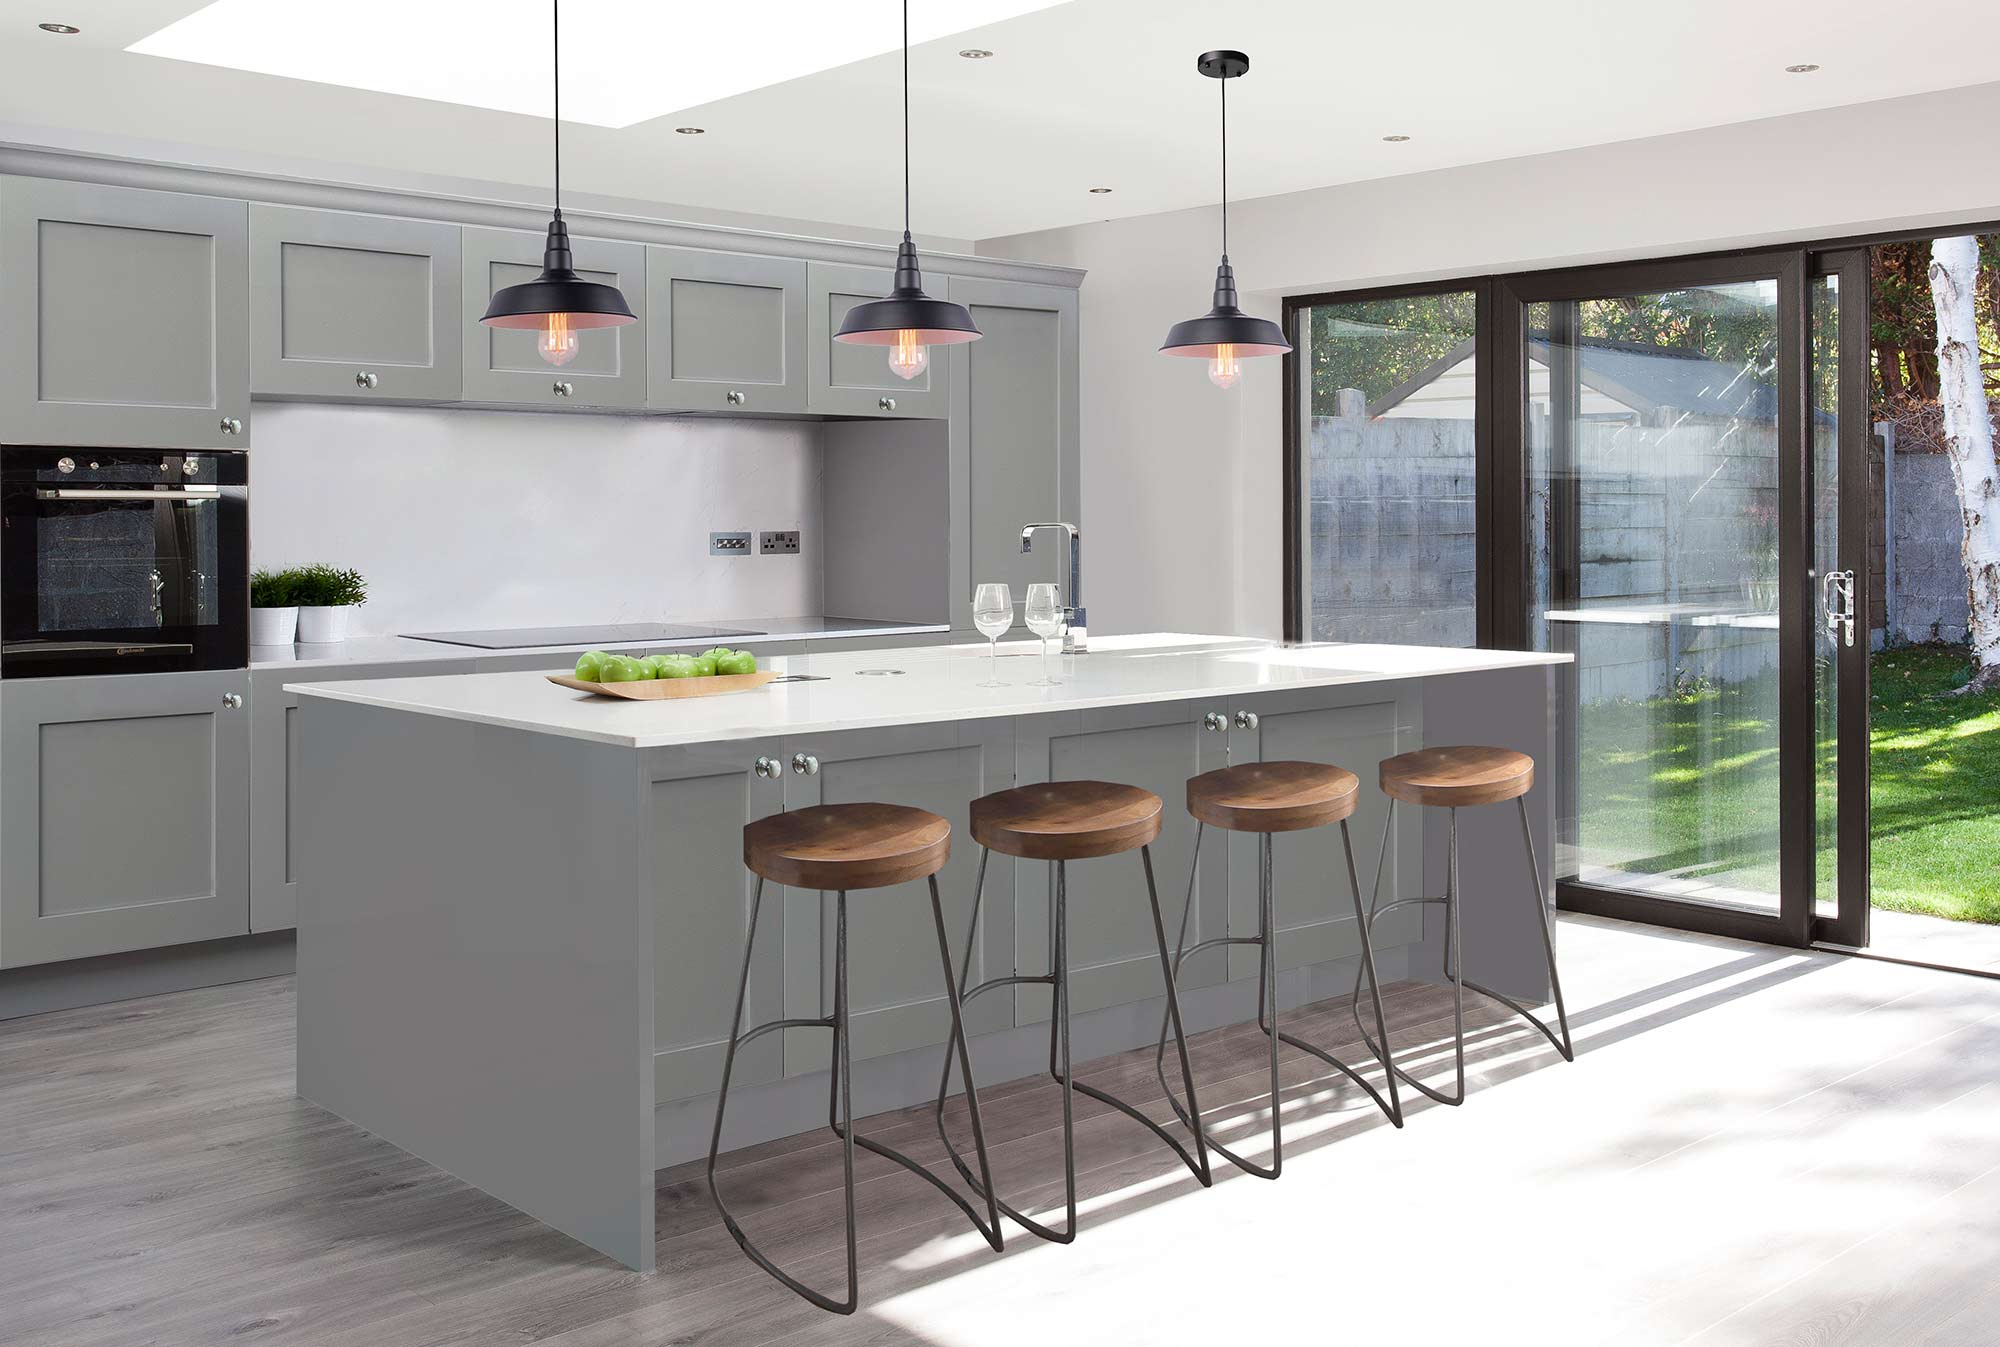 Kitchen World | Kitchens and Wardrobes designed for the way you live!